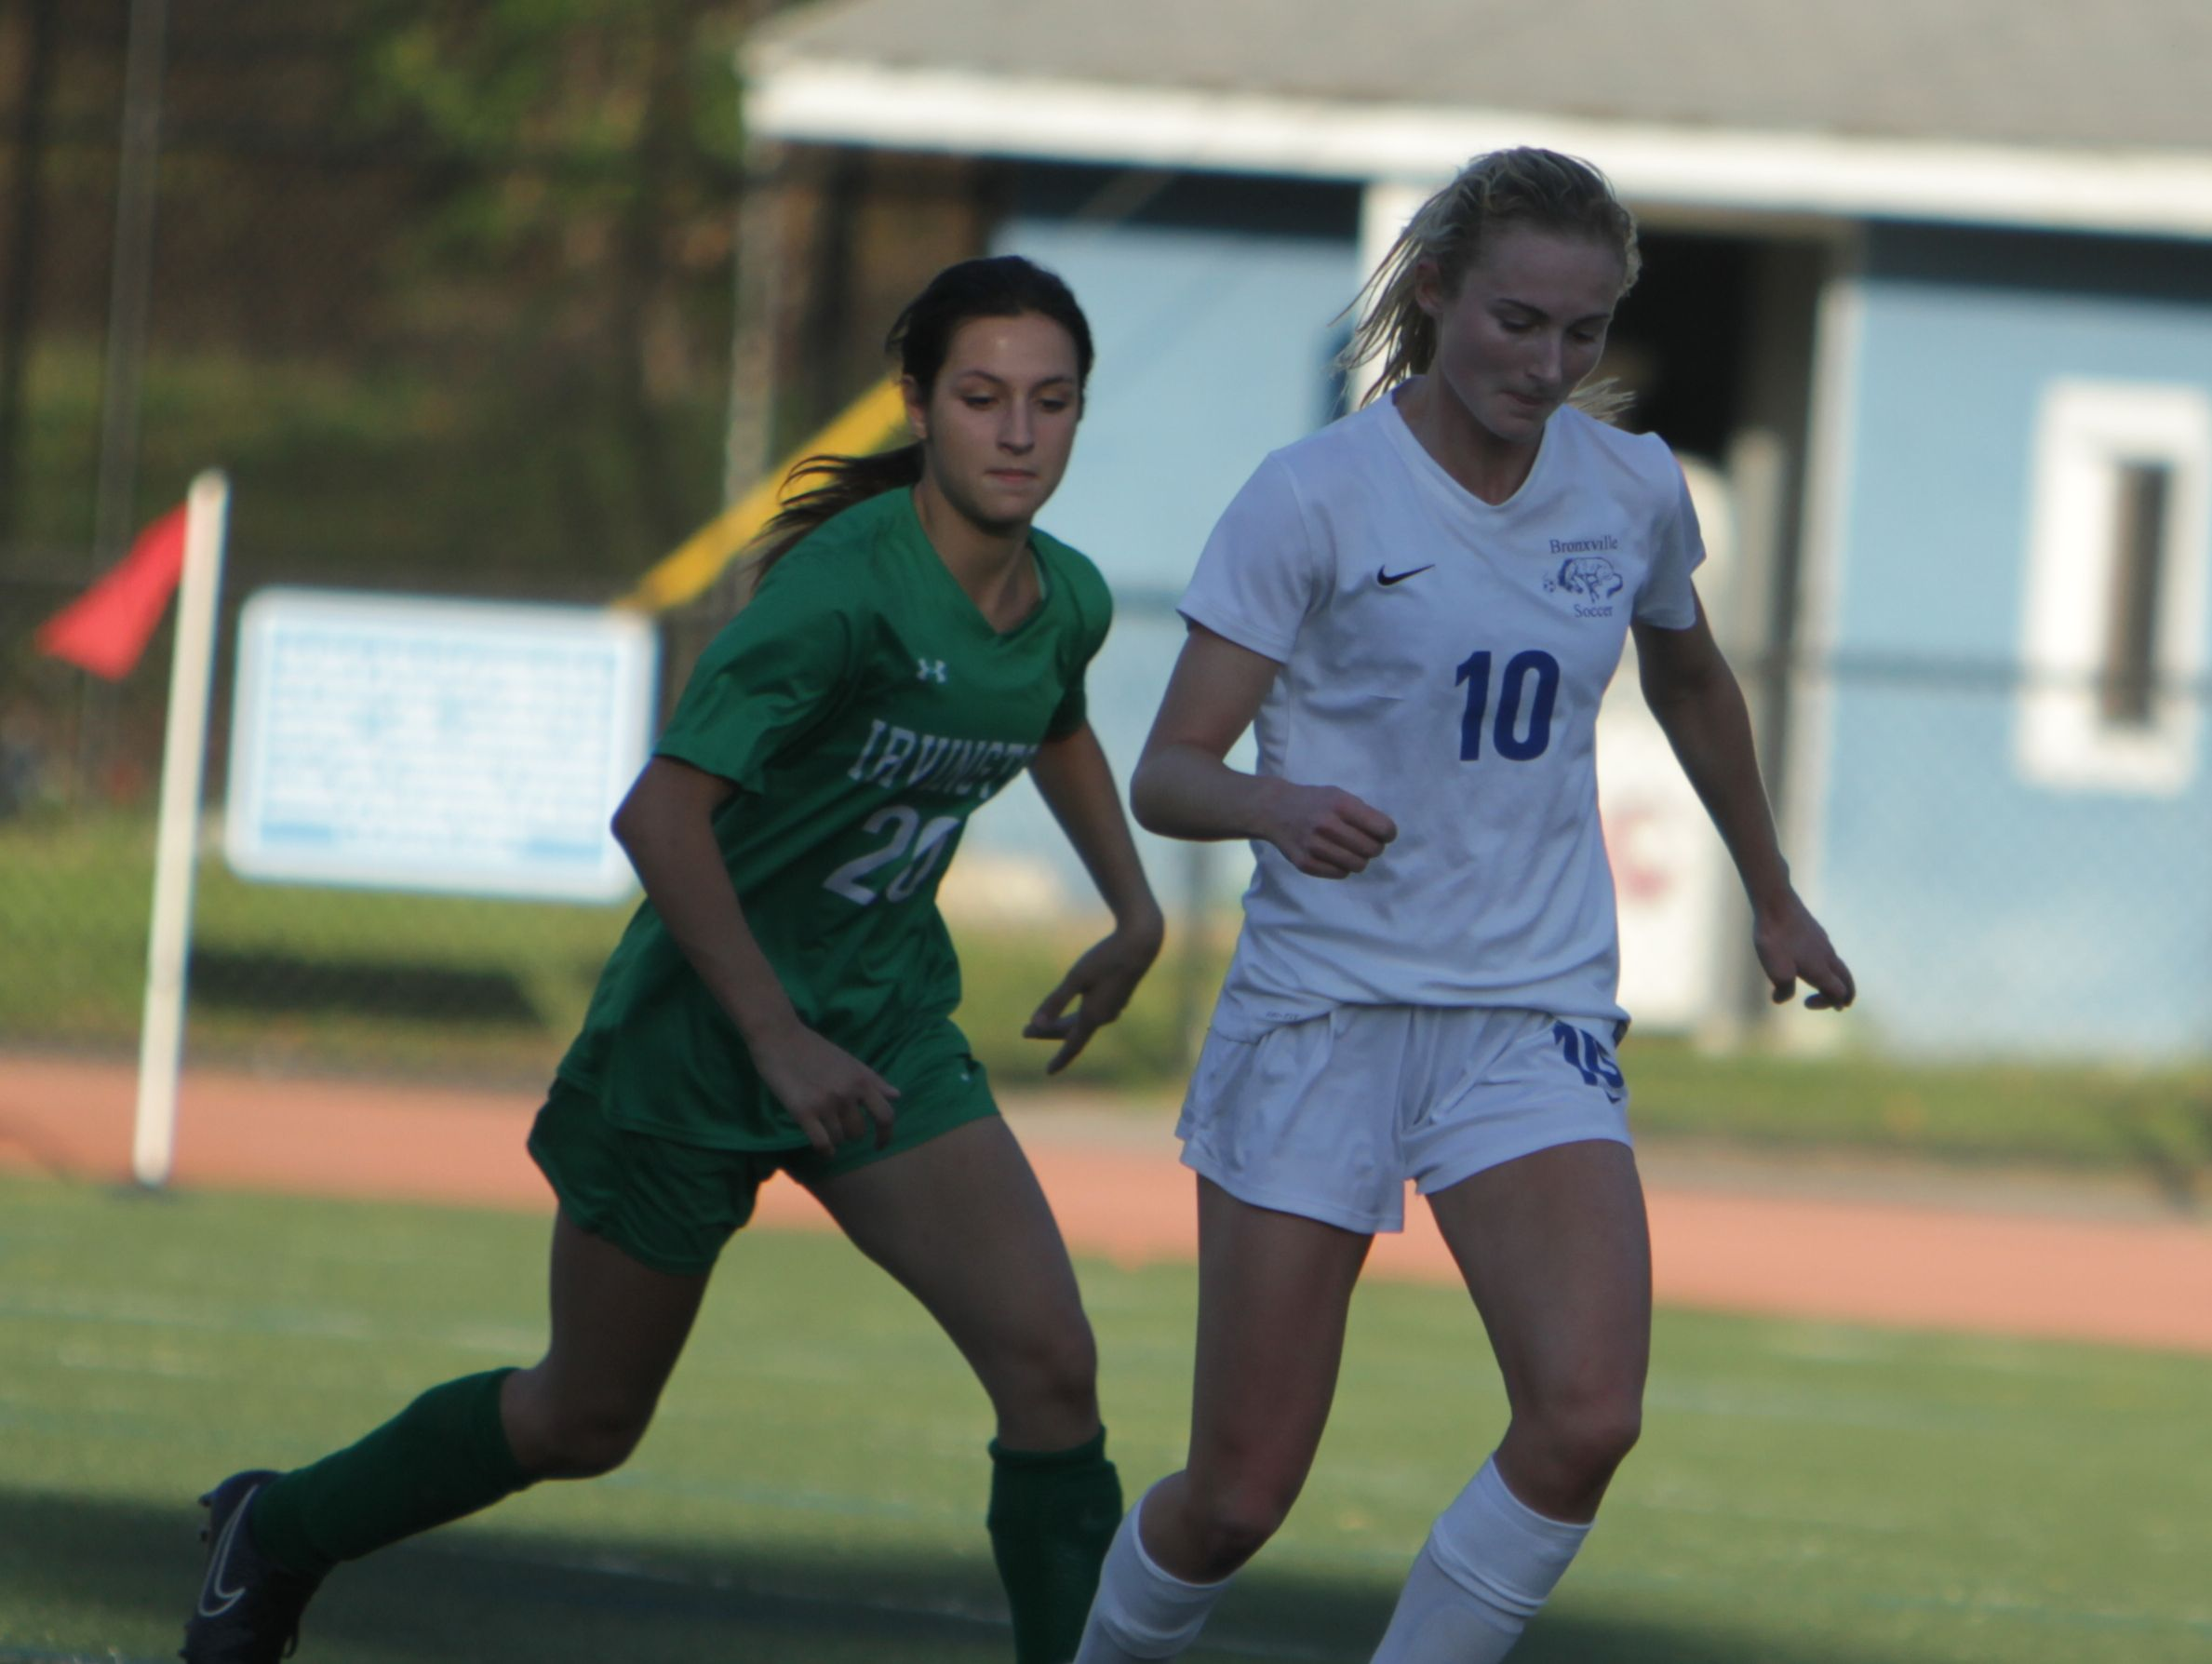 Bronxville's Mason Warble dribbles the ball while being watched by Irvington's Sofia Garcia during a Section 1 girls soccer game between Bronxville and Irvington at Bronxville High School on Thursday, Oct. 6th, 2016. Bronxville won 4-3.